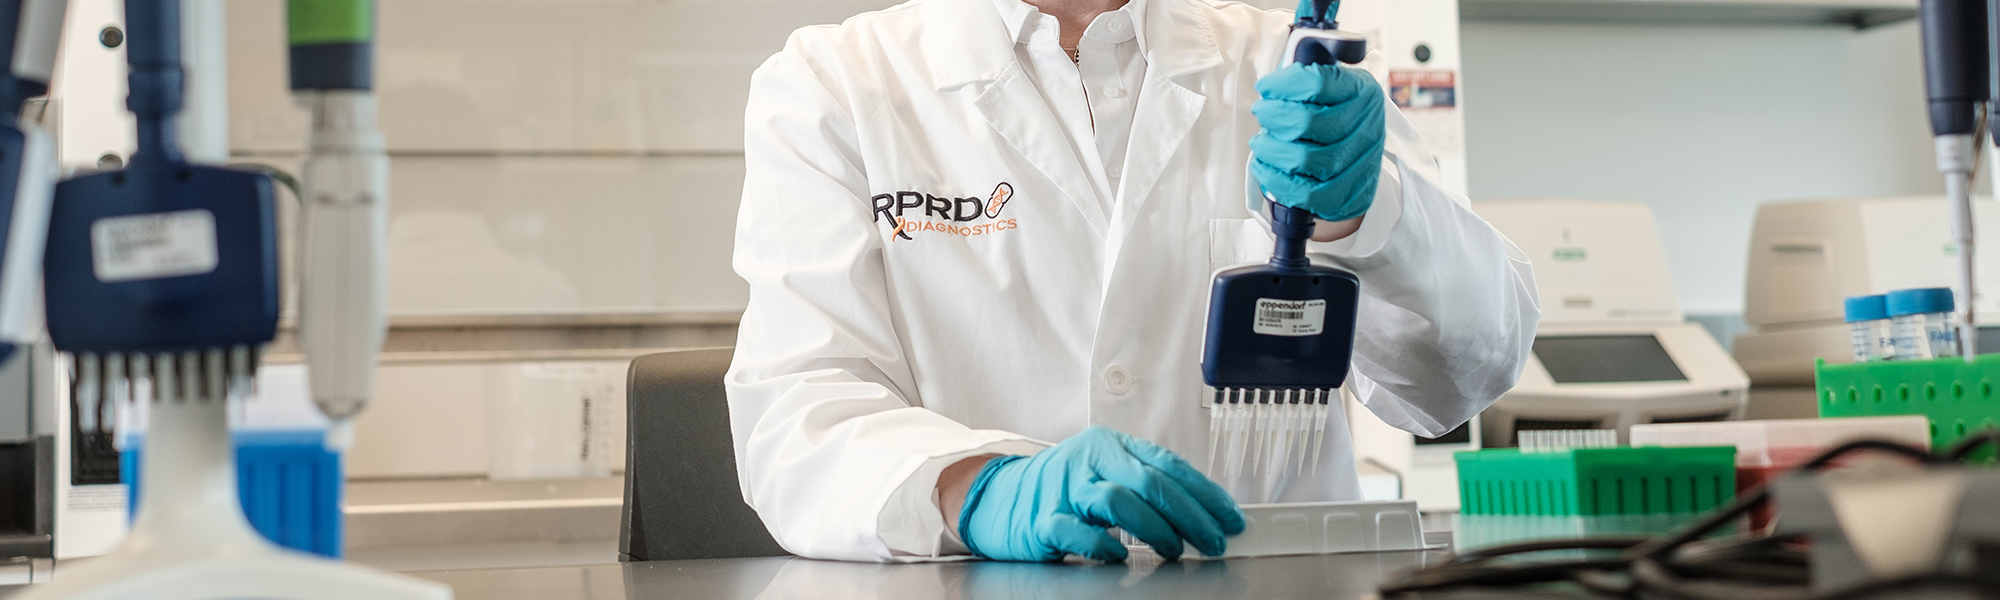 Precision Medicine Experts at RPRDx